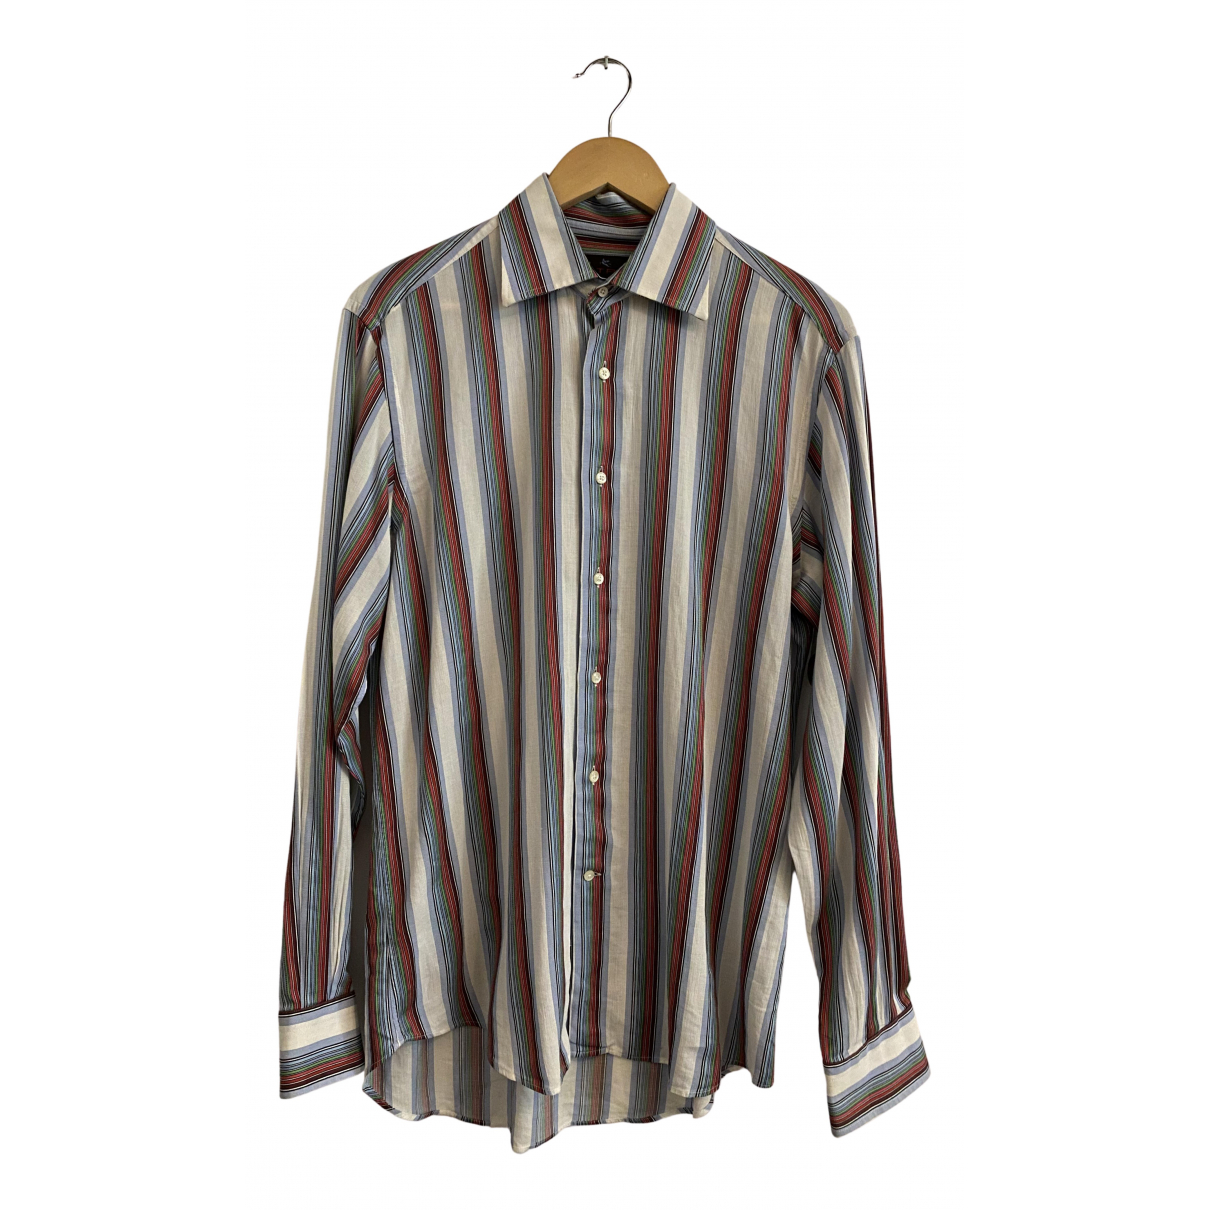 Etro N White Cotton Shirts for Men 41 EU (tour de cou / collar)